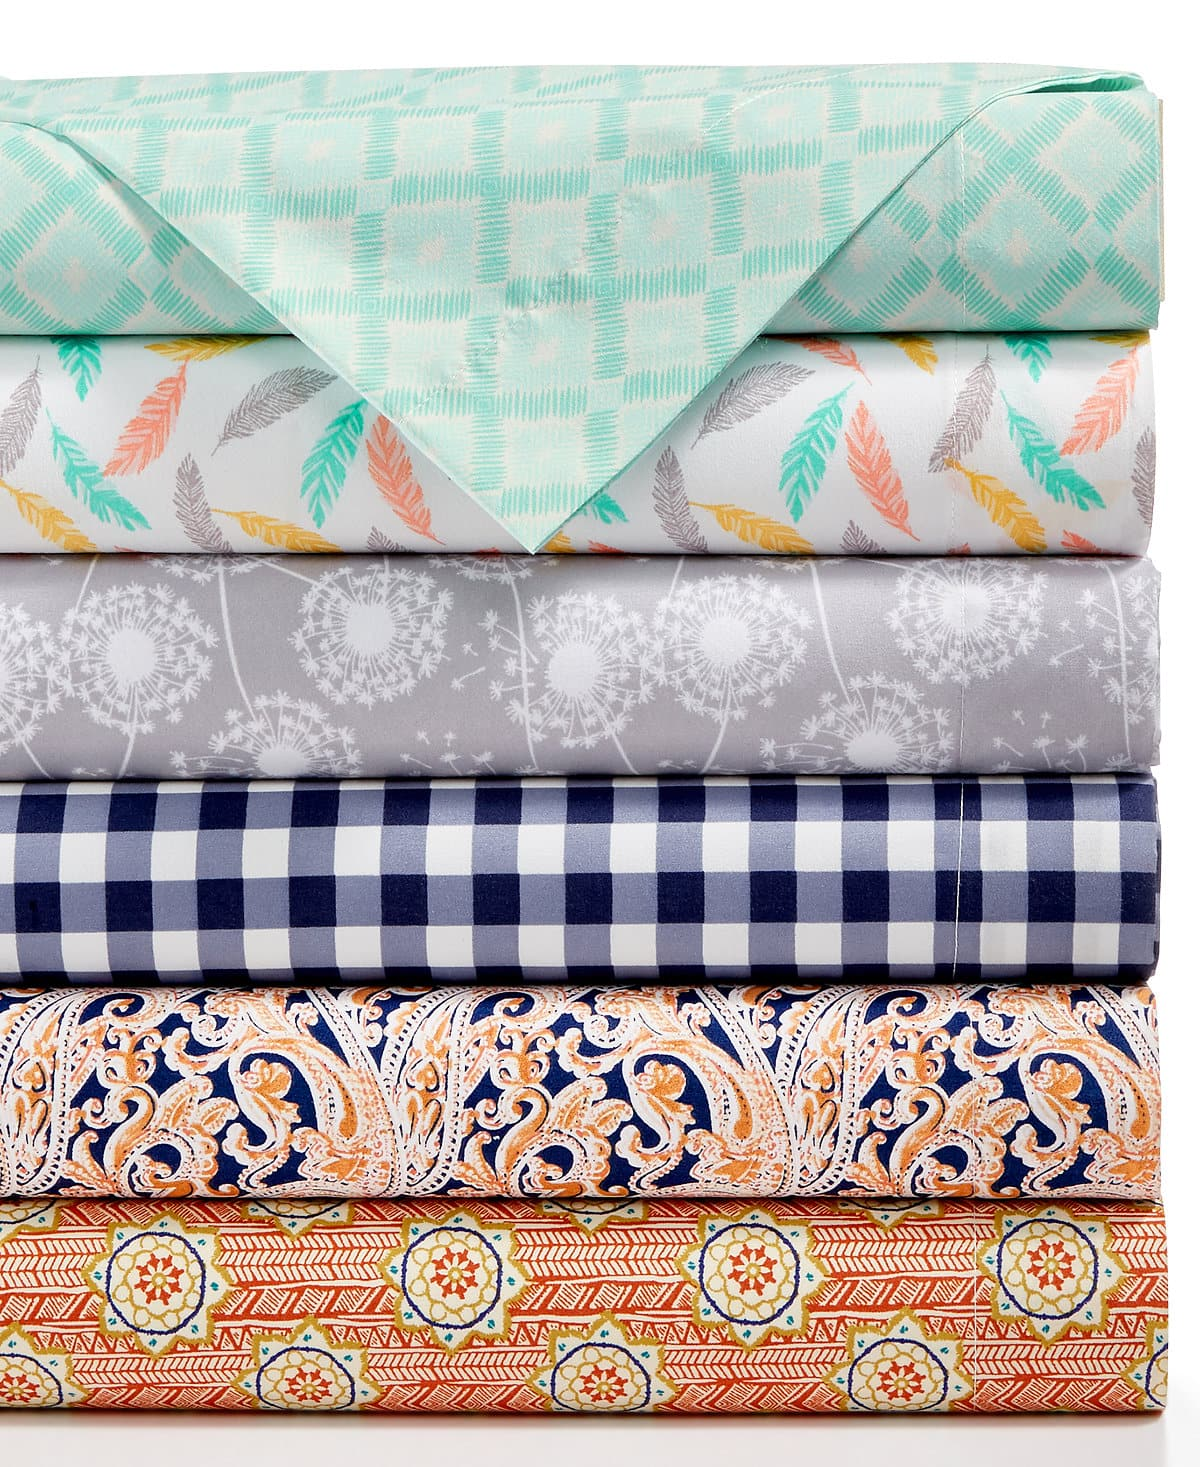 Jessica Sanders Printed/Plain Microfiber Sheet Sets: King/Queen/Full $15.99, Twin XL $9.99, Twin $5.99 + Free Store Pickup